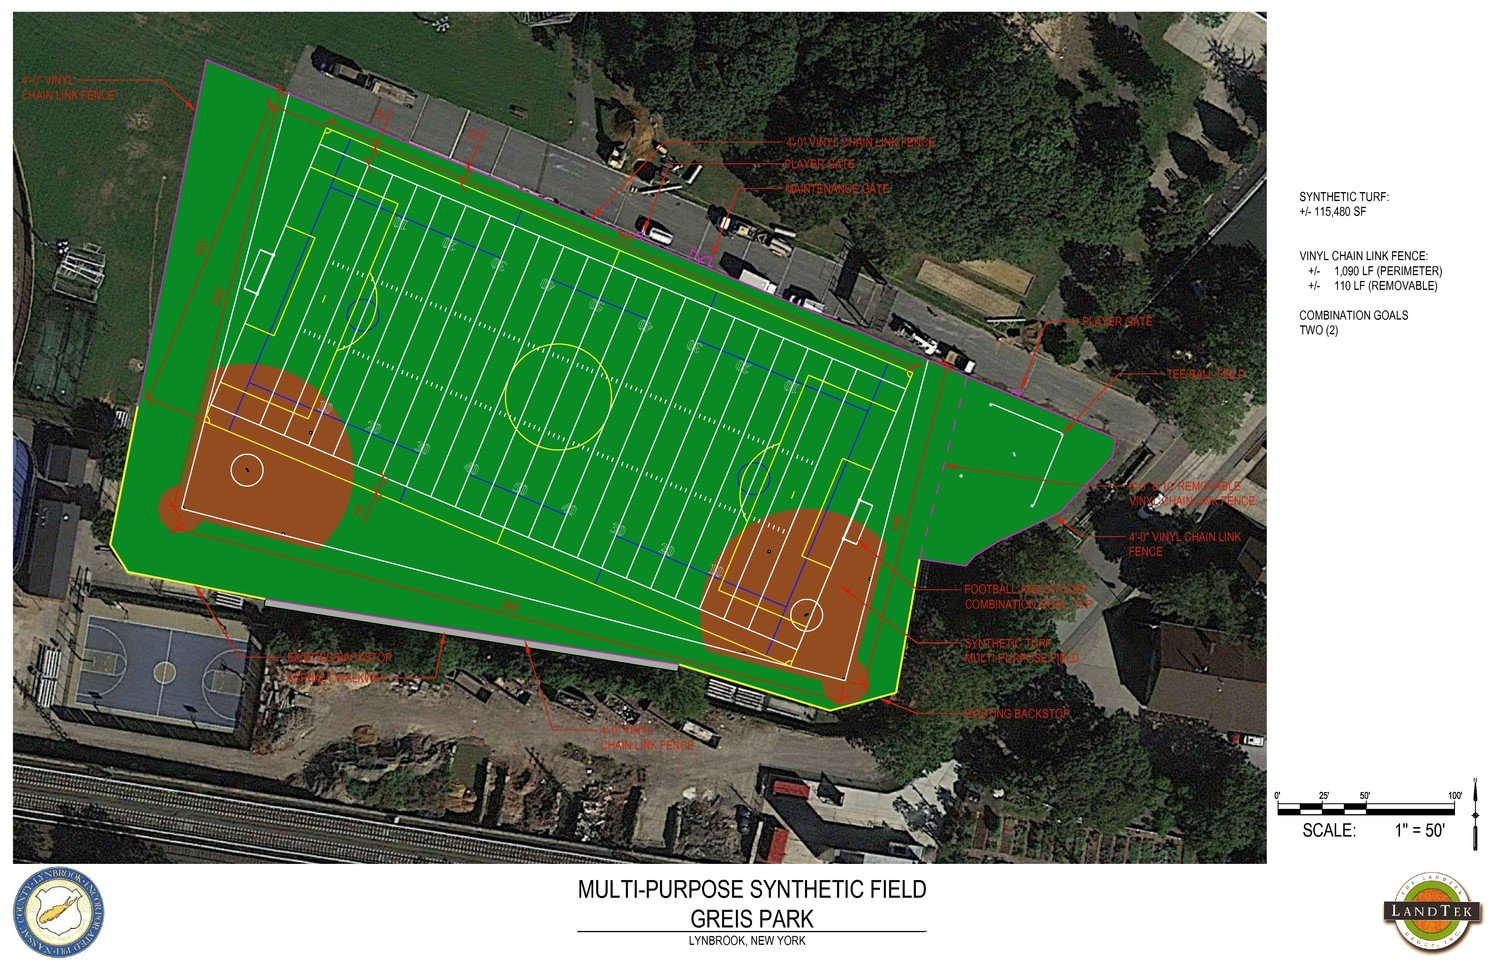 A rendering of the $1.3 million turf fields that the Amityville-based LandTek Group will install at Greis Park. Construction is expected to begin in late March and be completed by the end of summer.